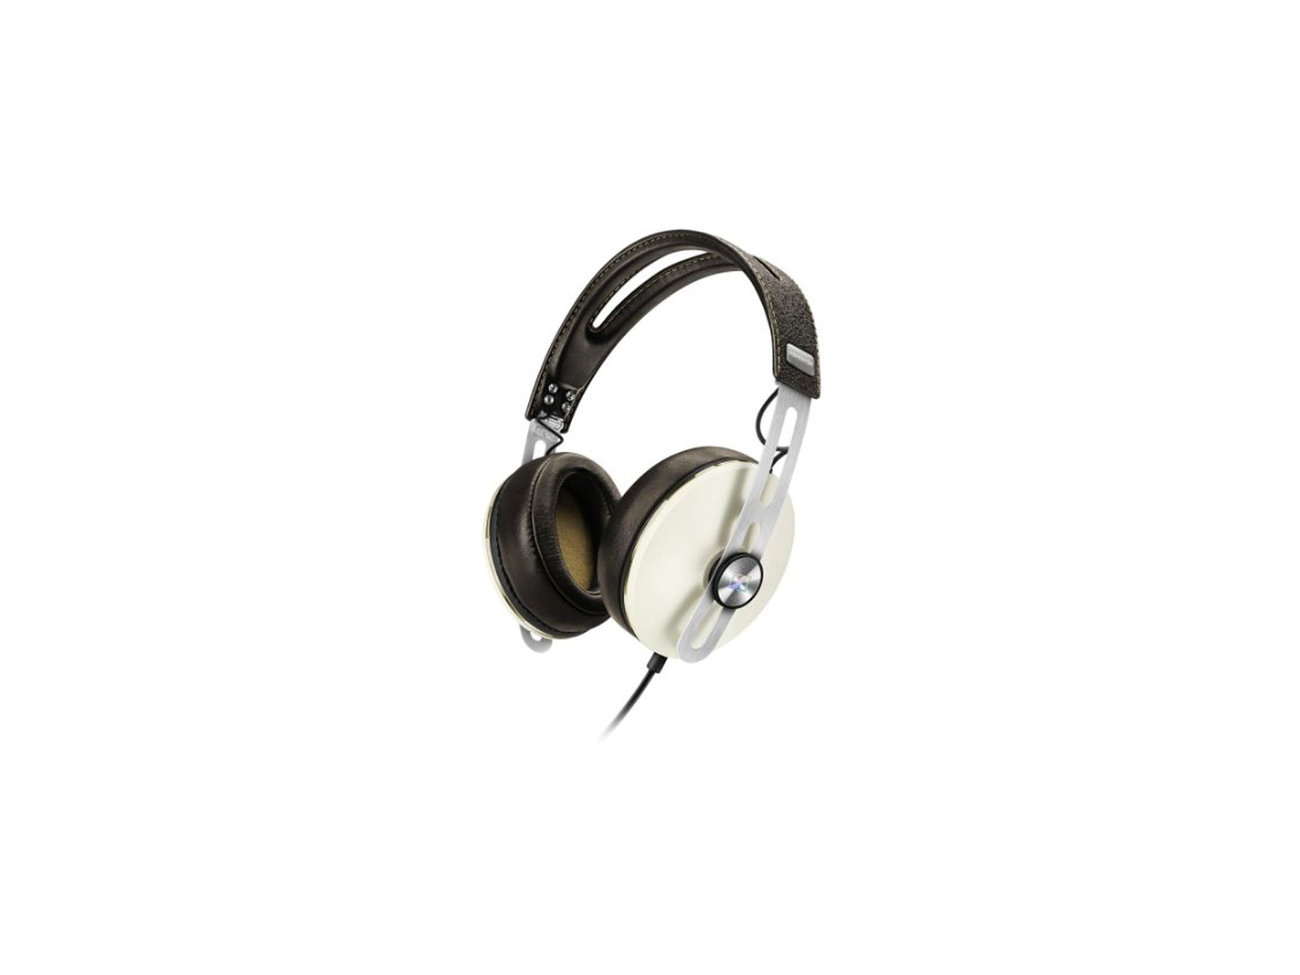 headphones-amazon-prime-BESTSHOP1215.jpg